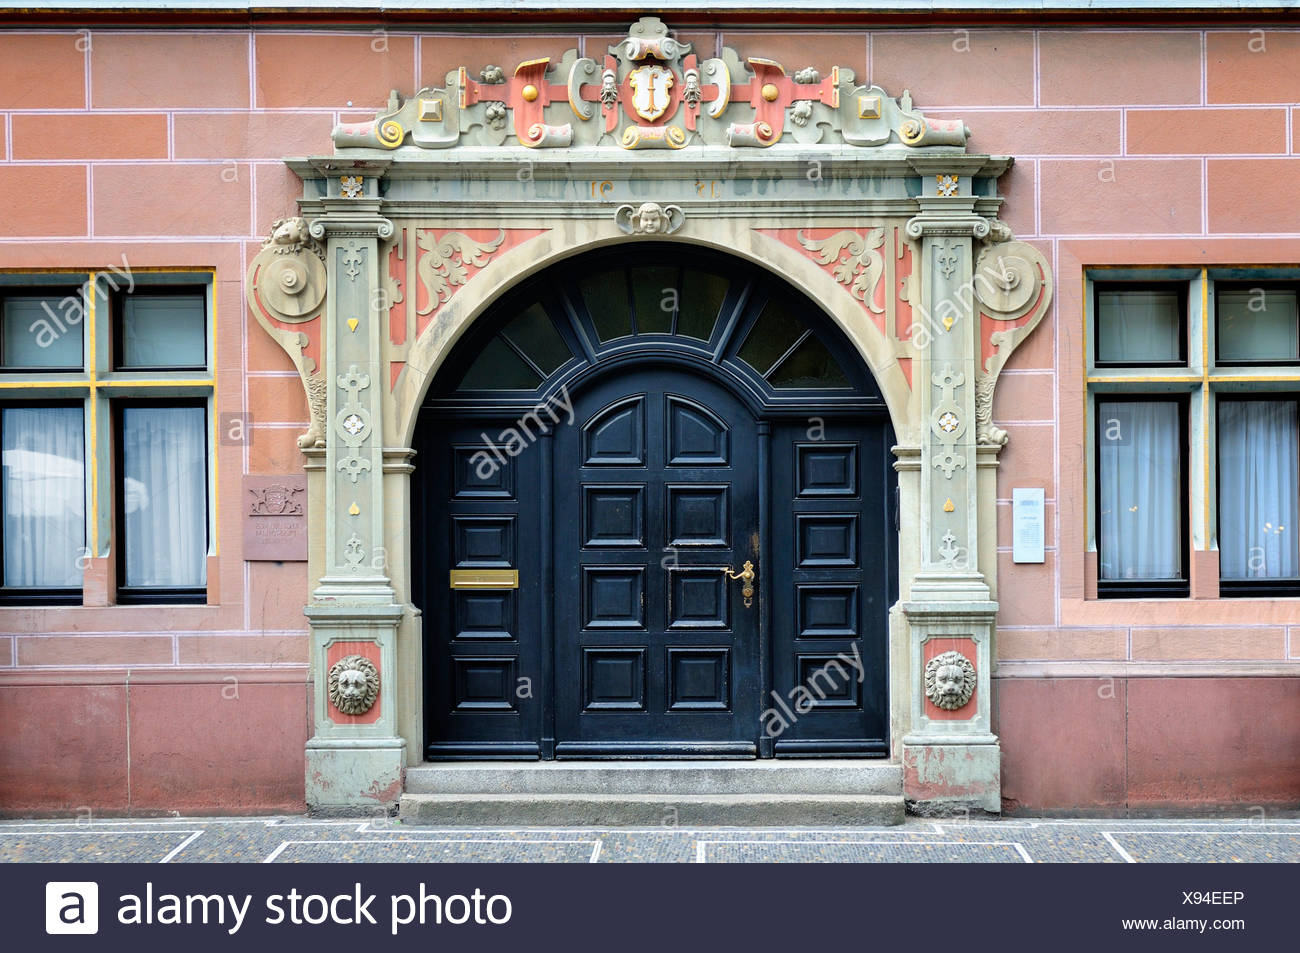 Portal of the government of the government presidium, Freiburg im Breisgau, Black Forest, Baden-Wuerttemberg, Germany, Europe - Stock Image